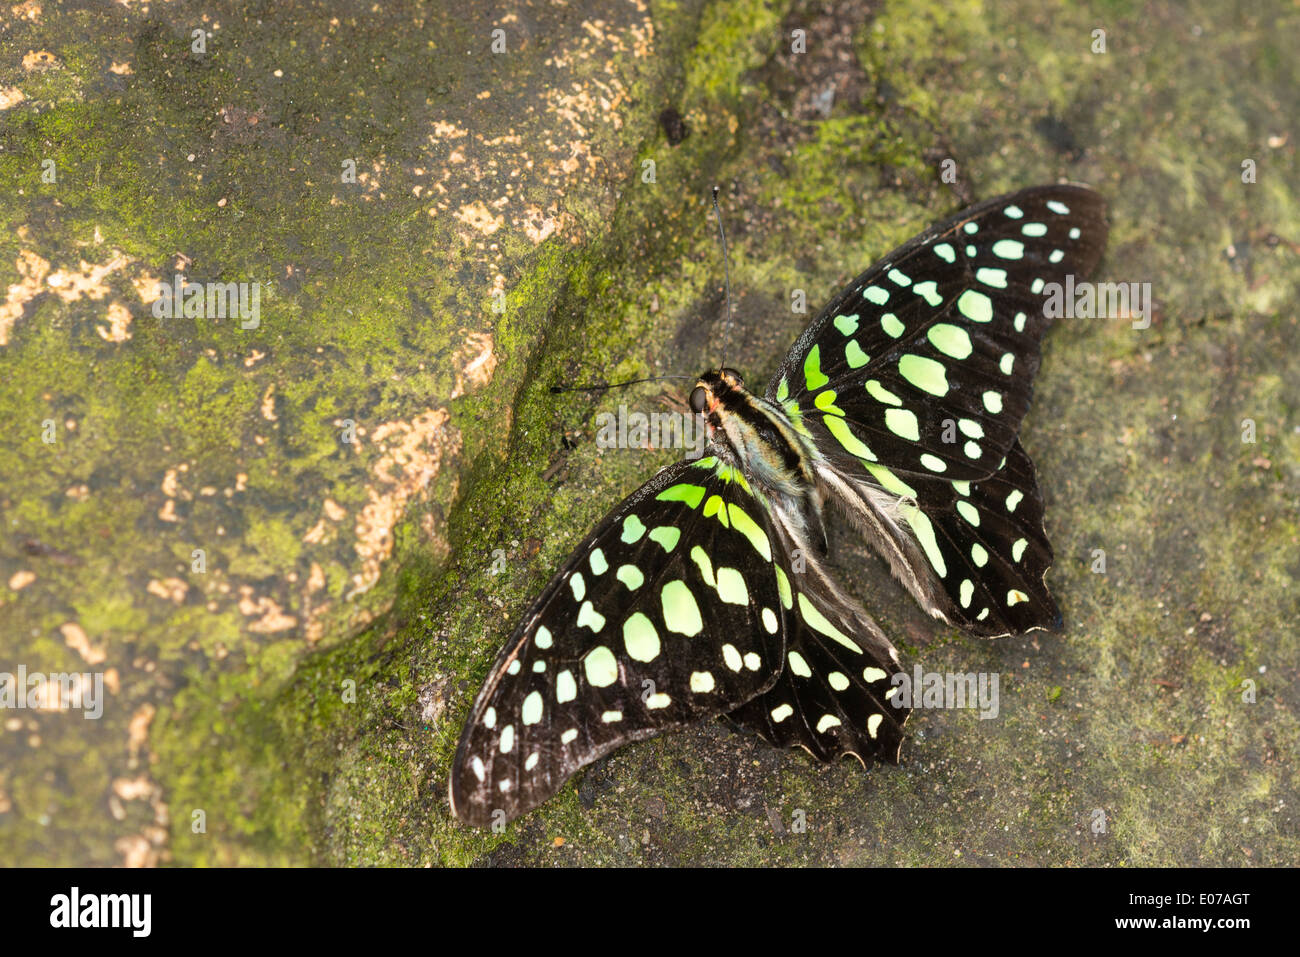 A Green-spotted Triangle resting - Stock Image